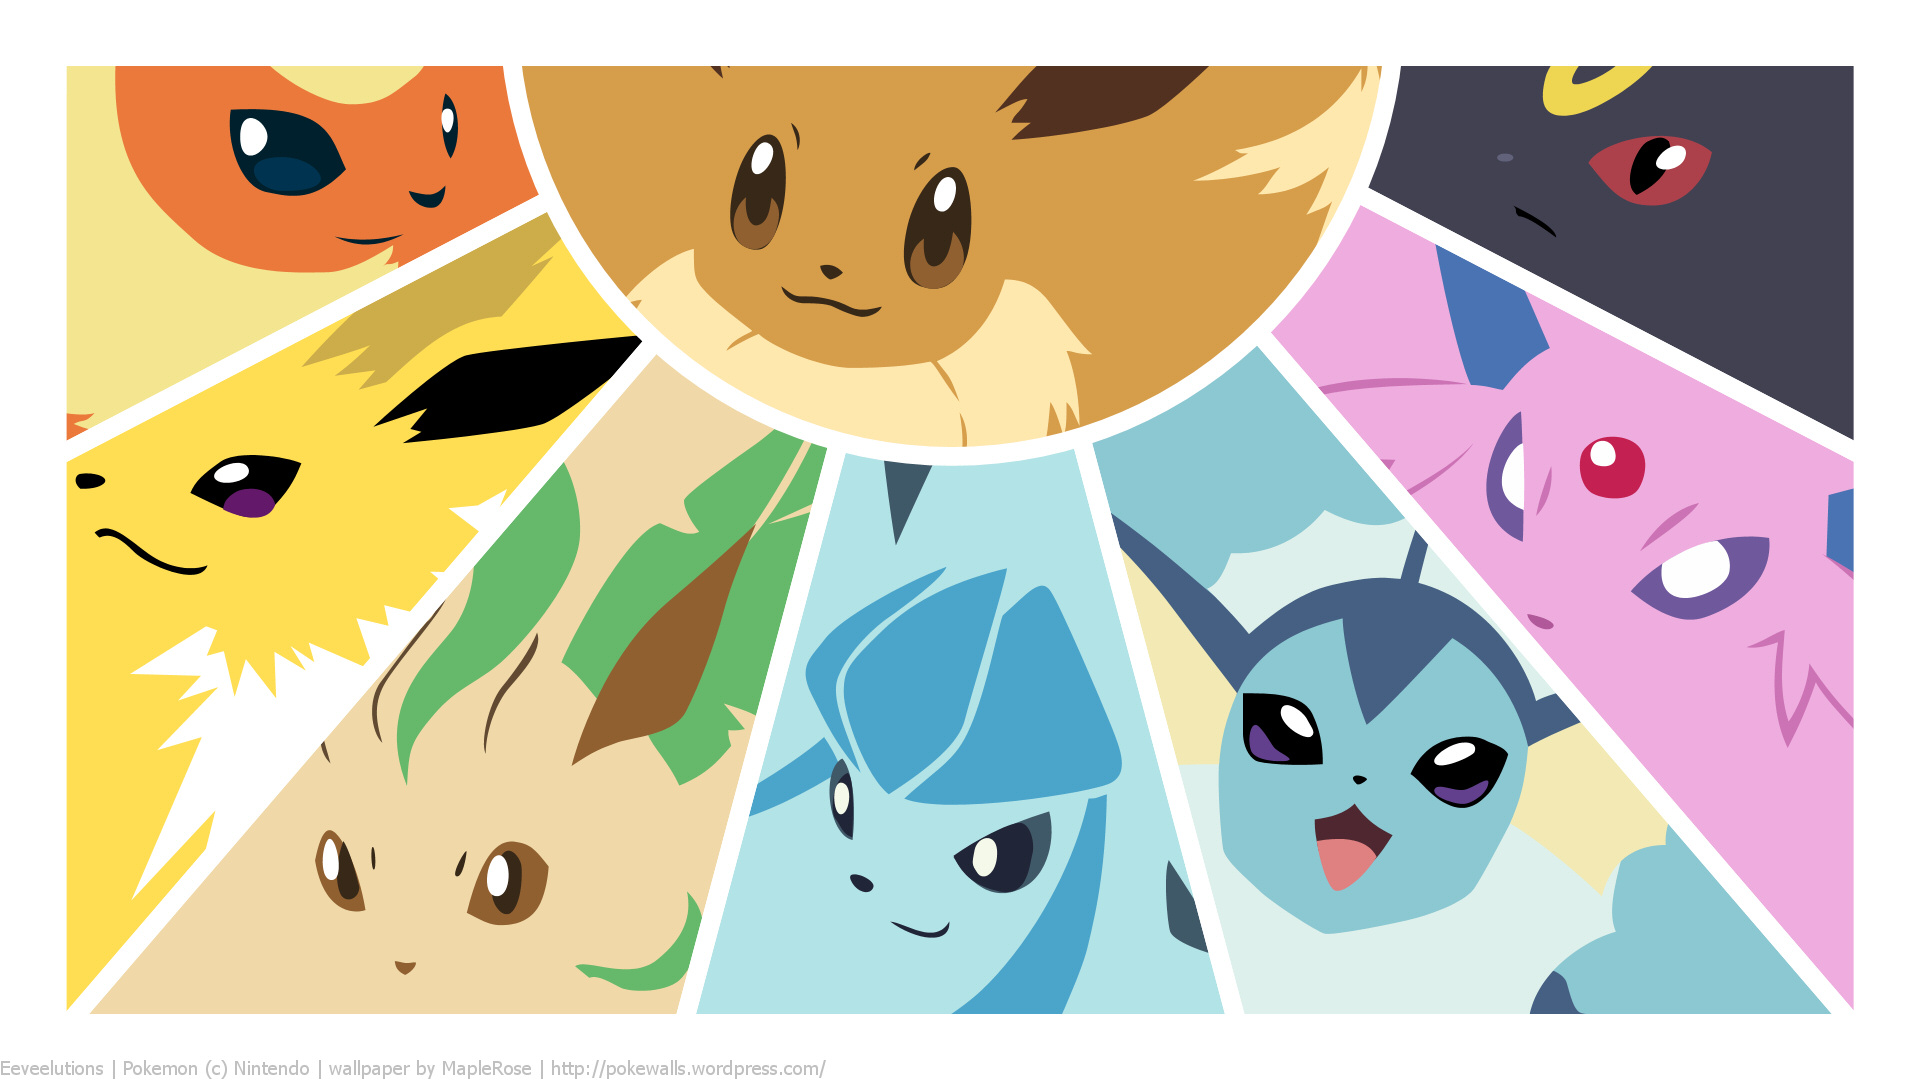 New-Eeveelution-Possibilities-1920×-1920×1080-×-wallpaper-wpc5807608